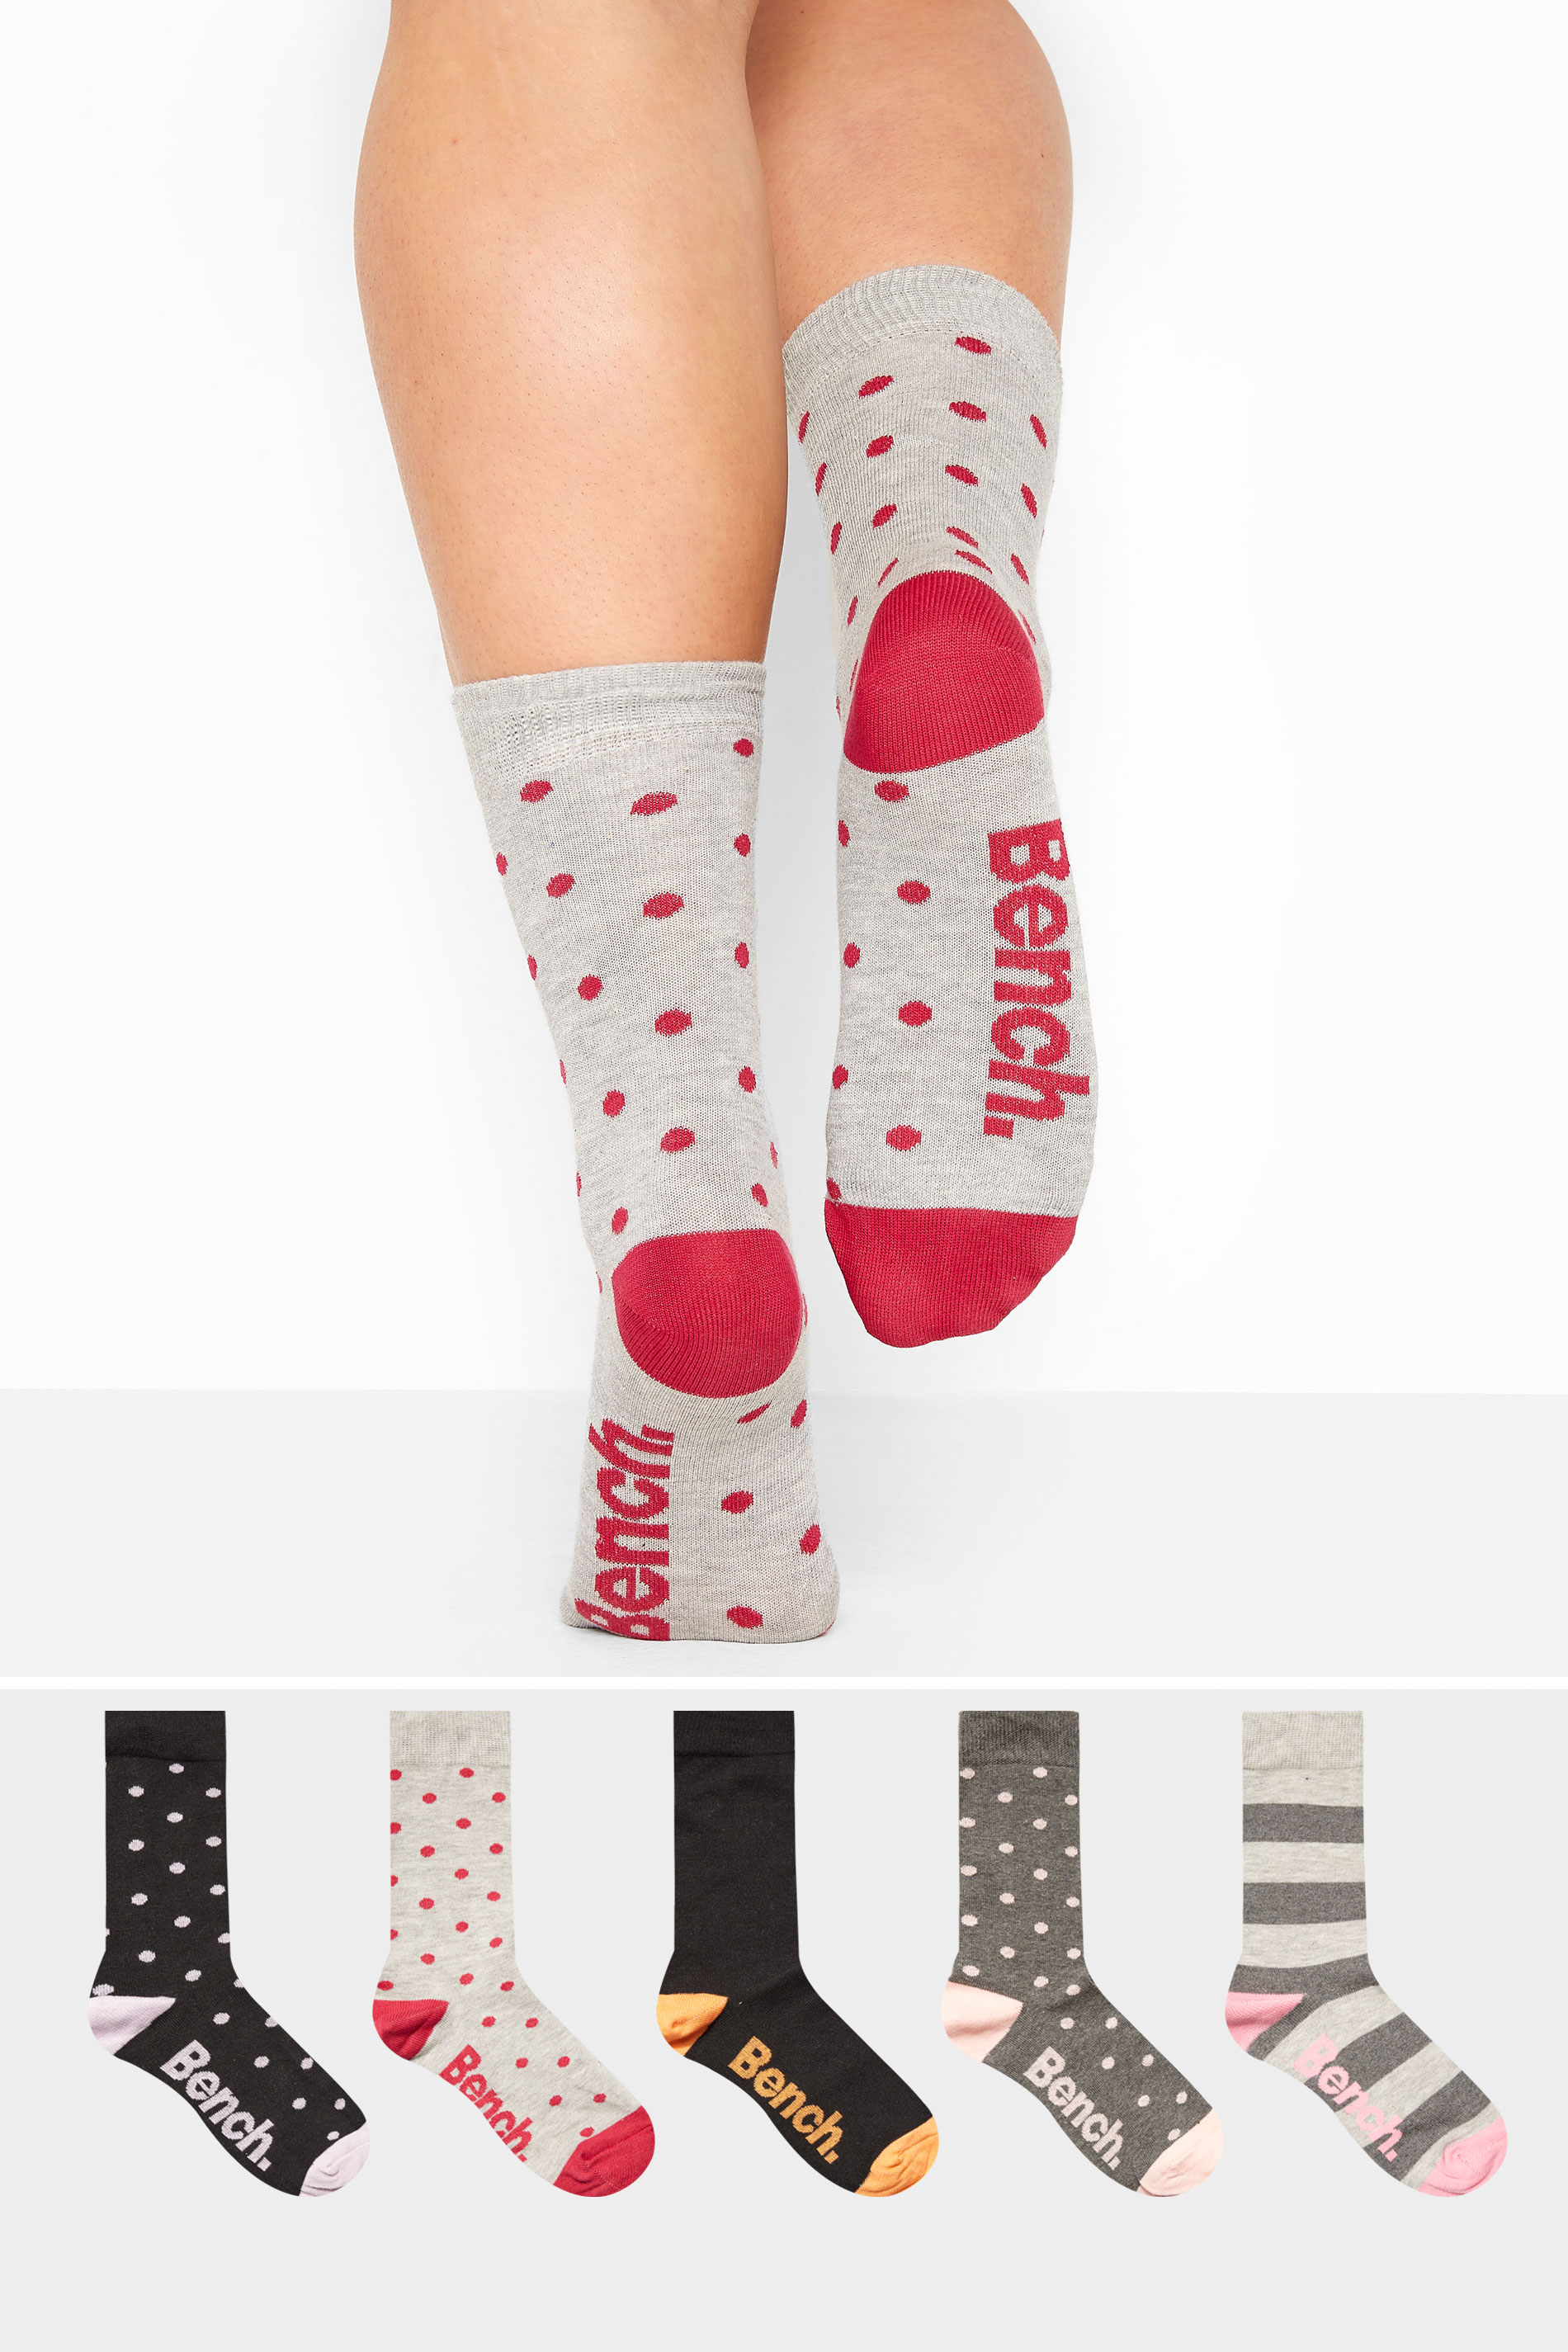 BENCH 5 Pack Multi Patterned Crew Socks